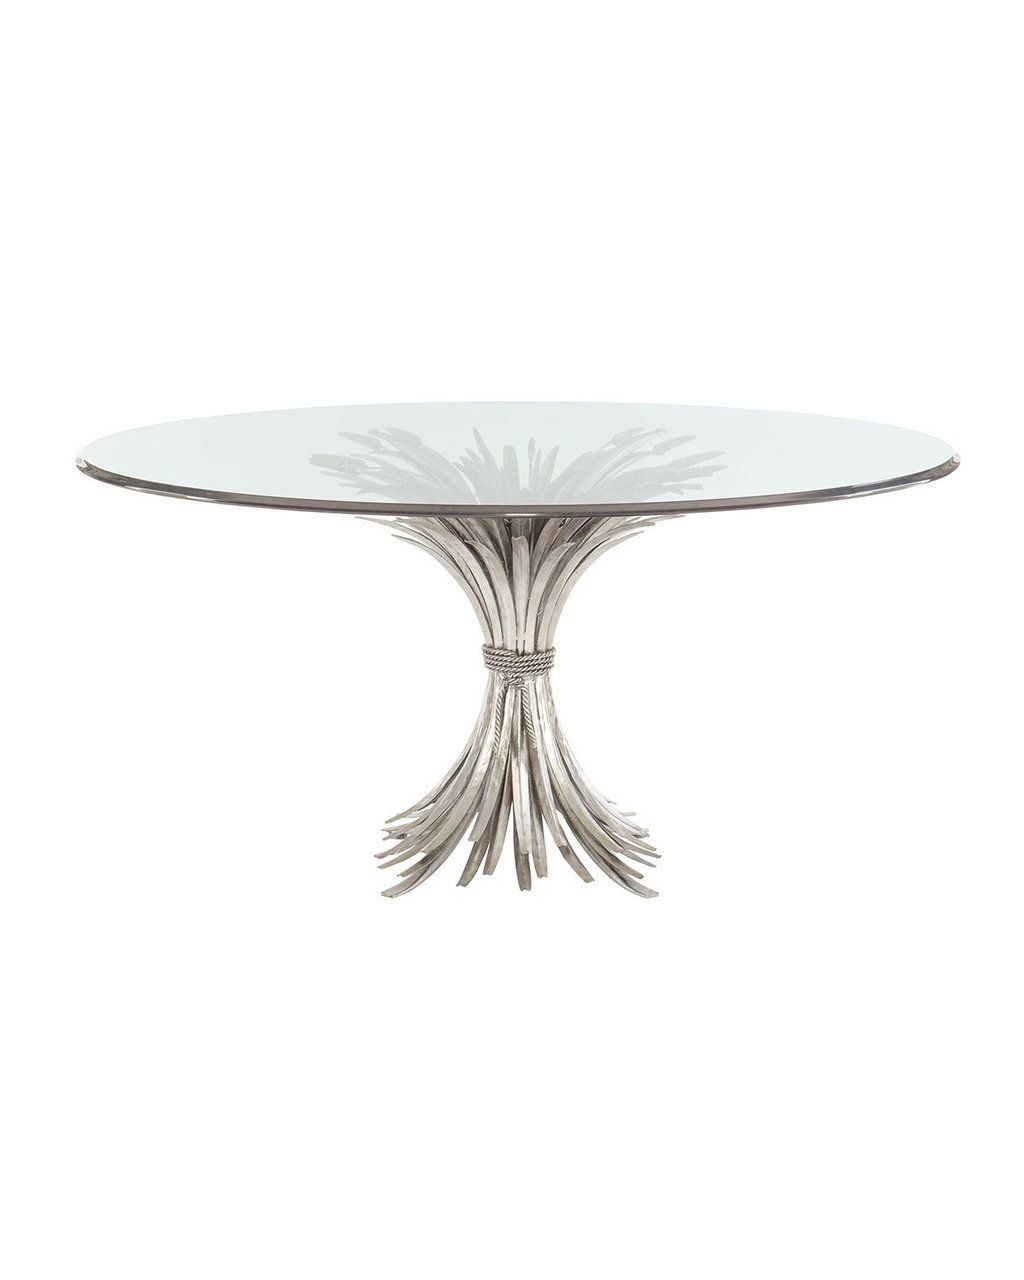 Bernhardt Gwinn Glass Top Dining Table 2295 Free Shipping Or